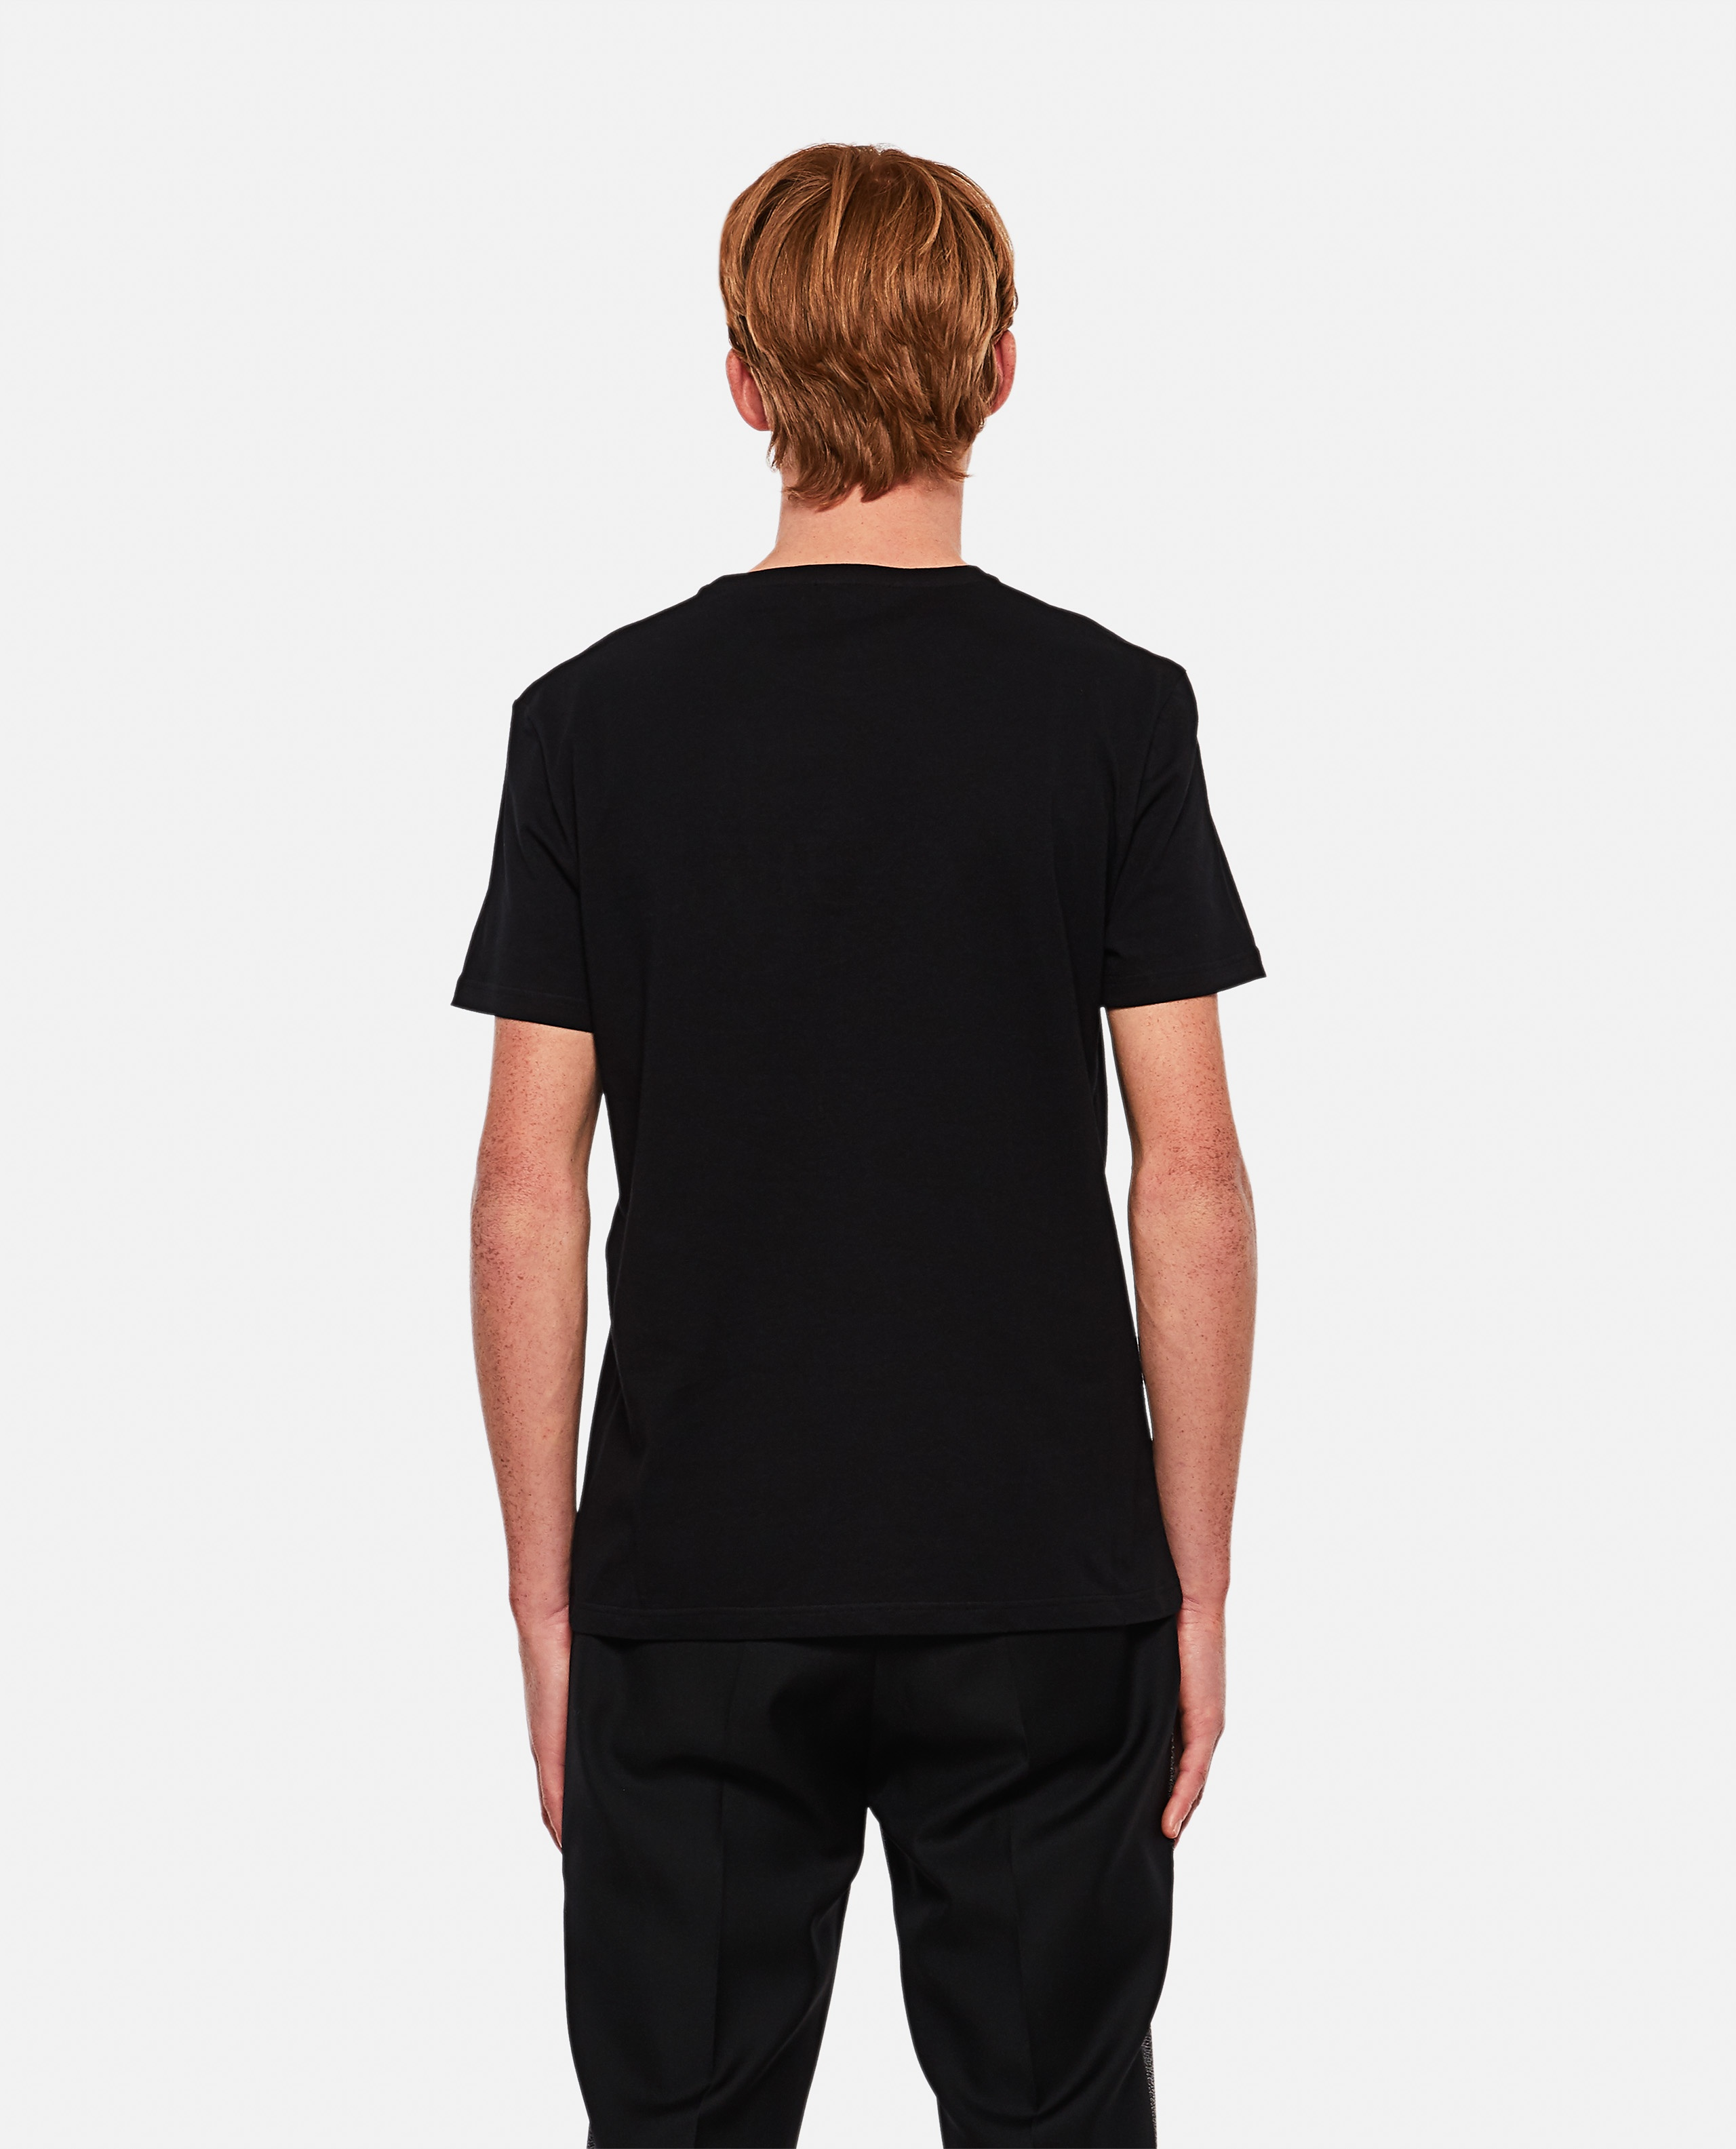 T-shirt with embroidery Men Alexander McQueen 000291000042842 3